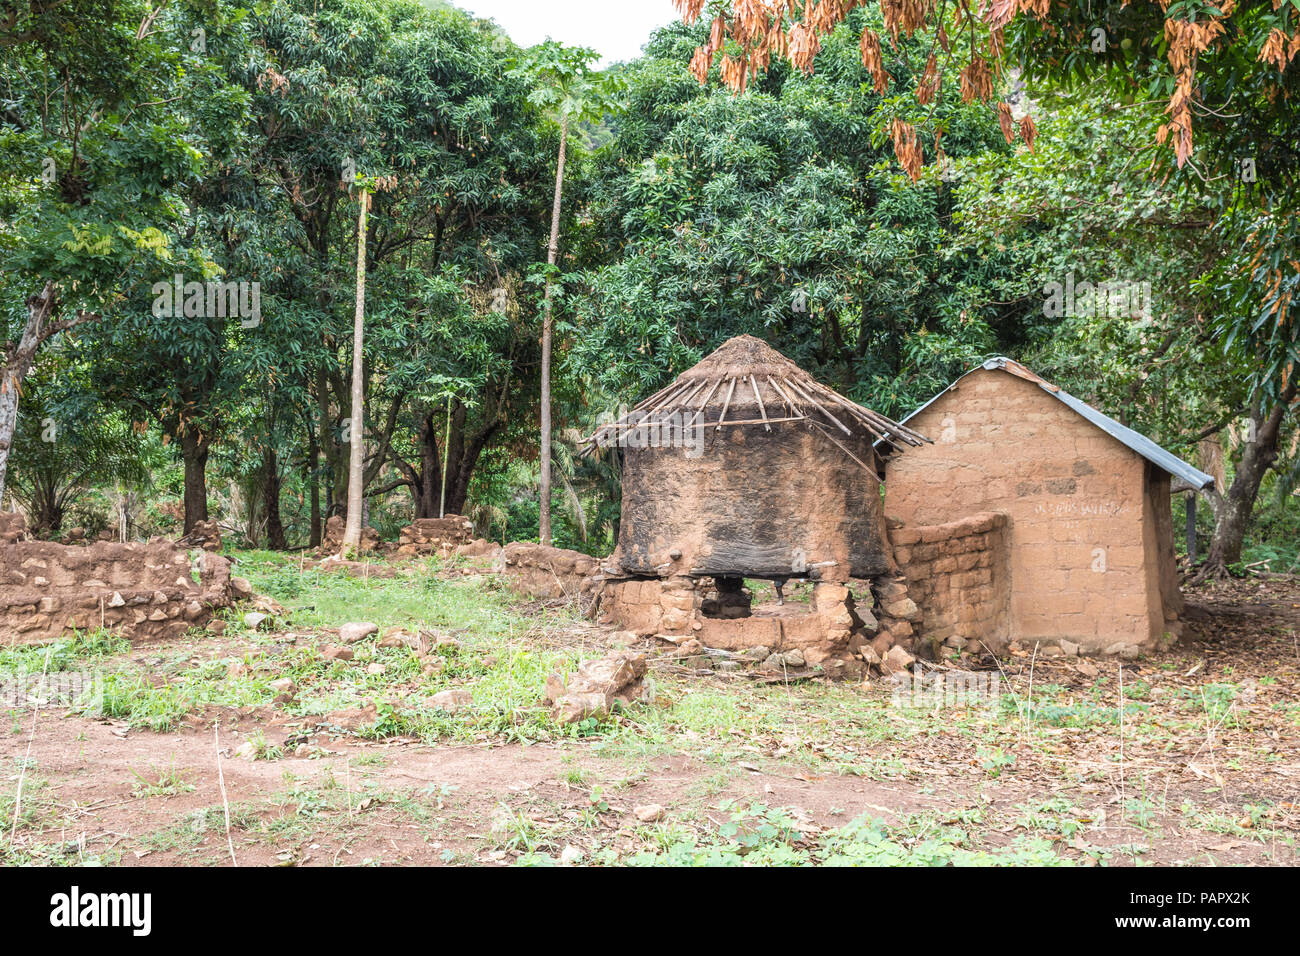 A beautiful picturesque view of a mountain side dwelling with trees, rocks and huts. It is beside a hiking trail. This was a grueling hike but awesome - Stock Image